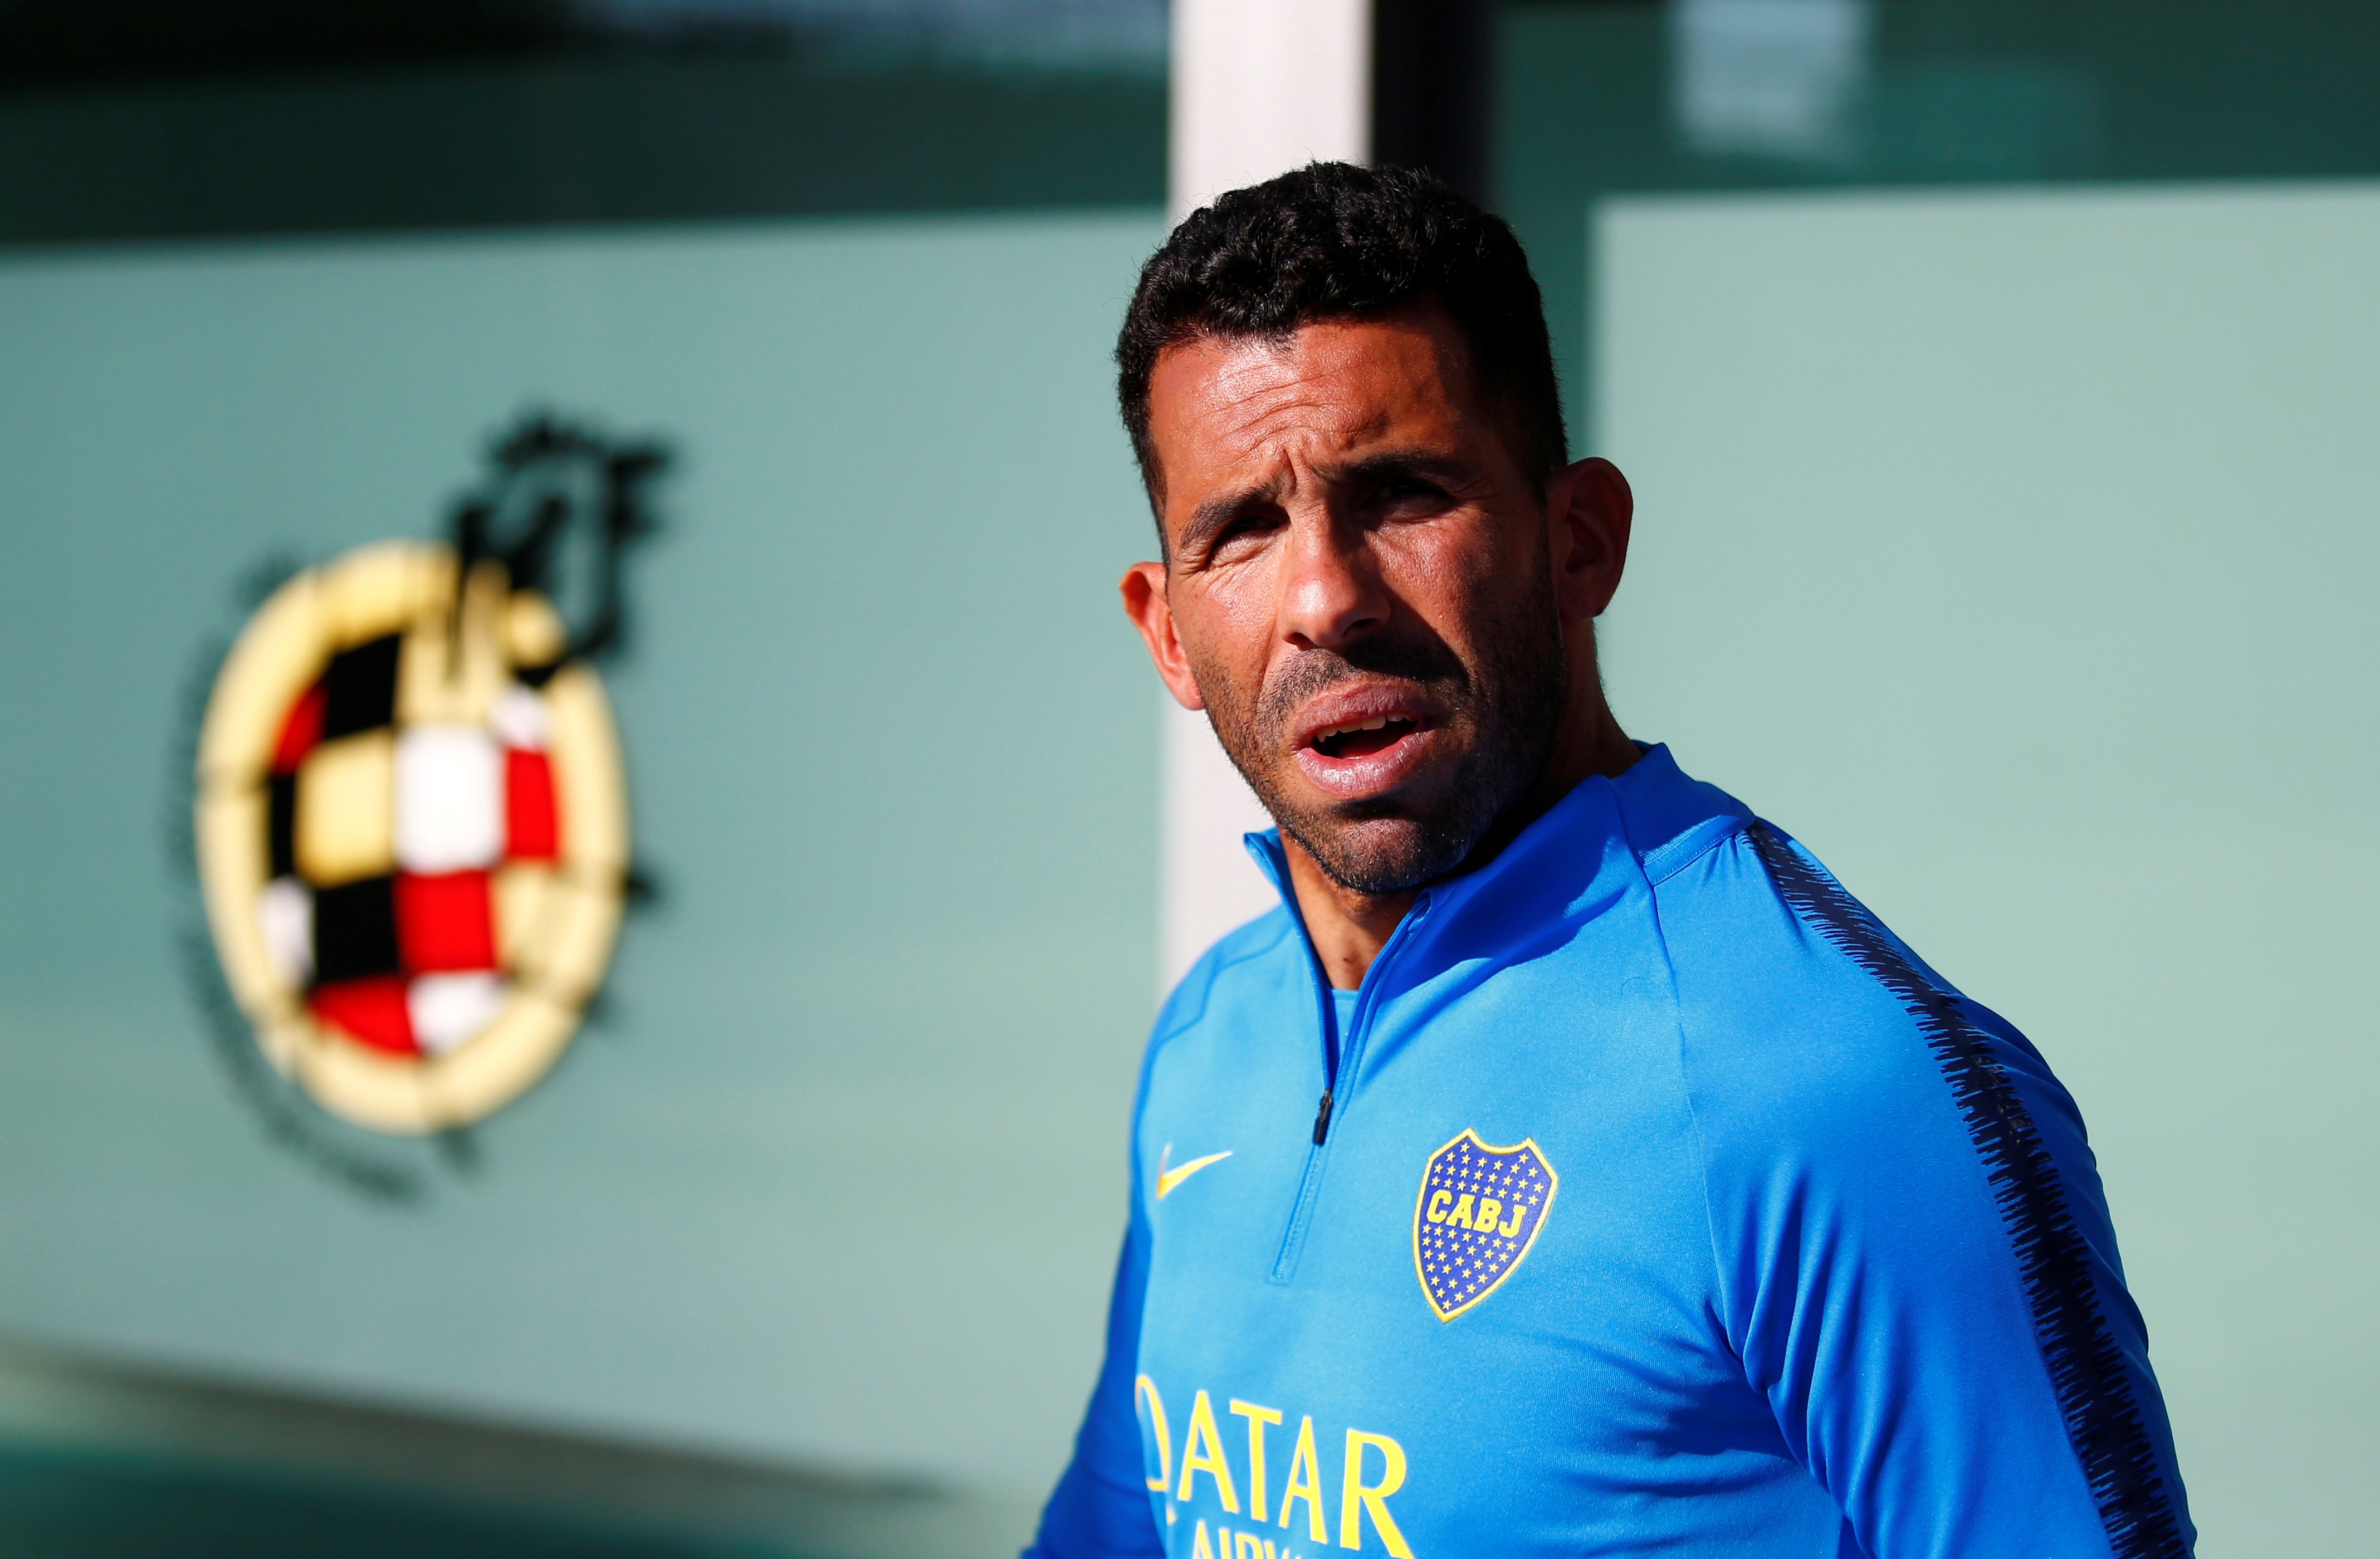 innovative design a9880 398ef Libertadores win would be fitting farewell for Tevez | The ...